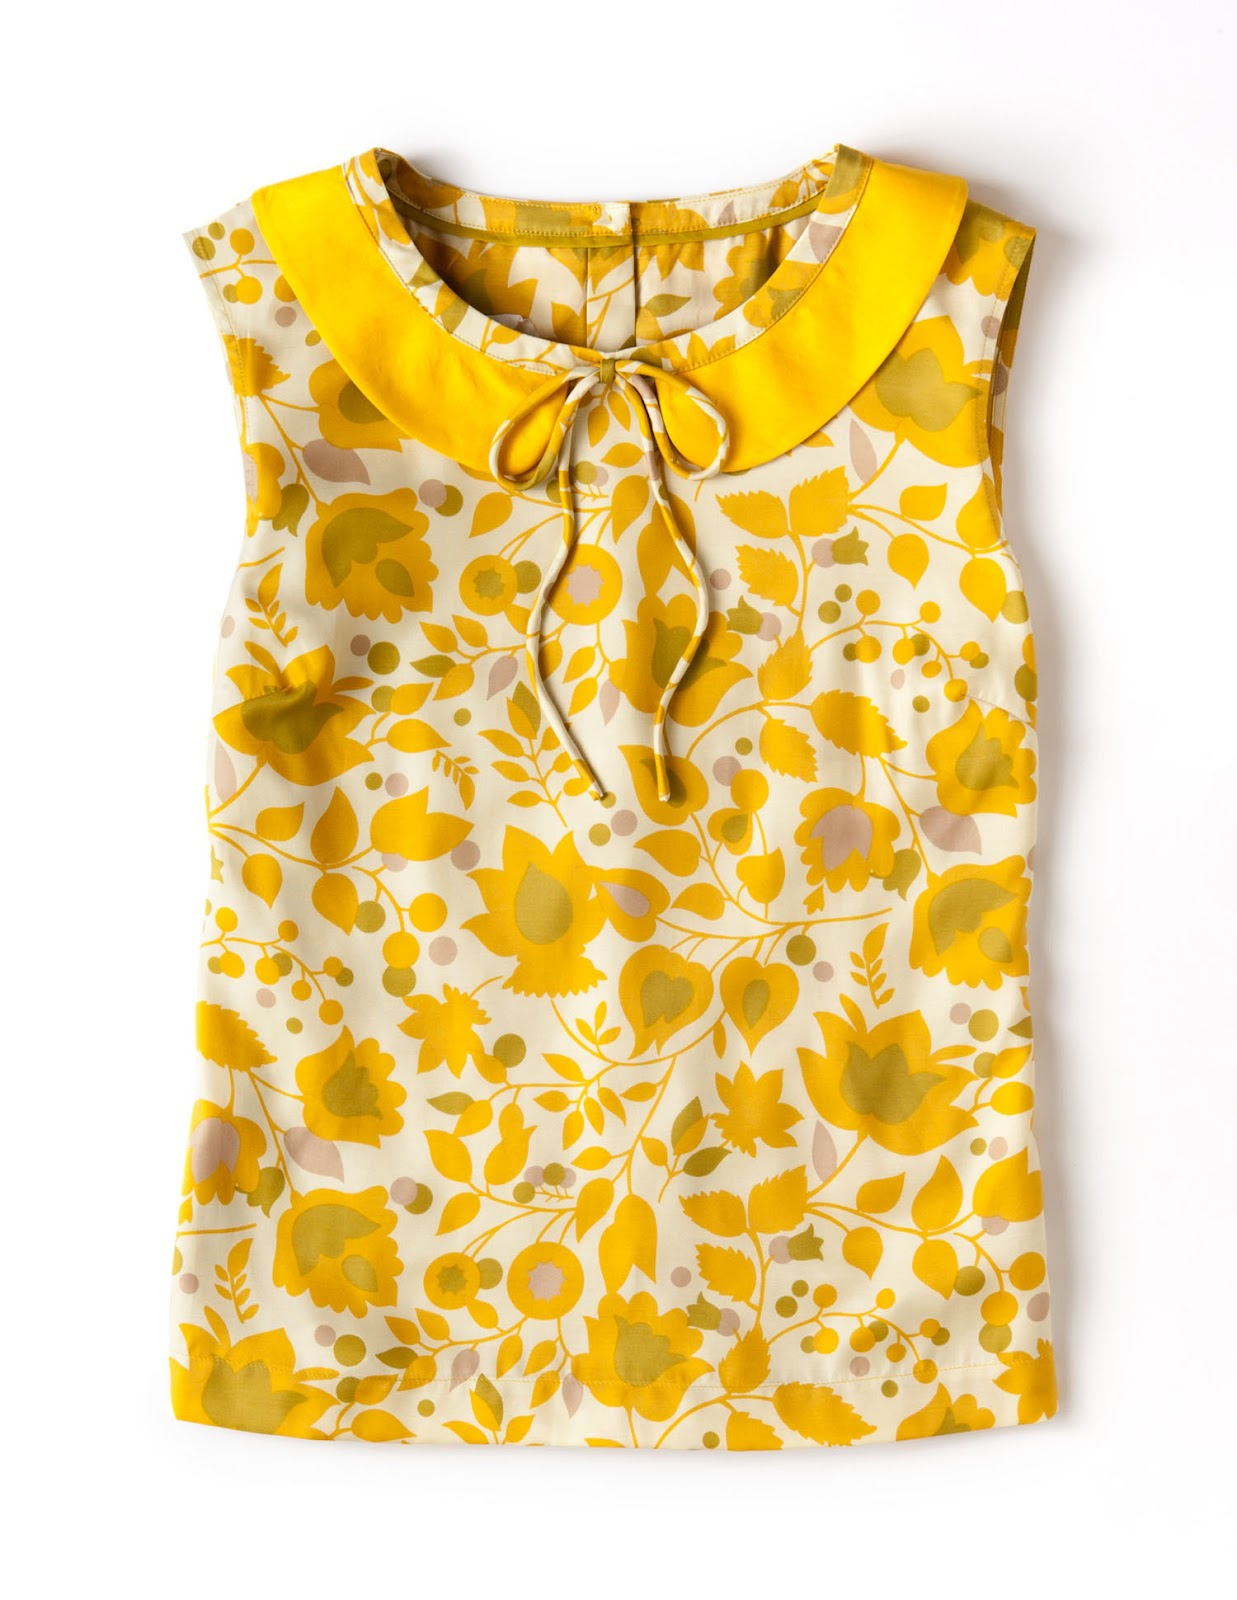 Breakfast at anthropologie boden sale up to 40 off for Boden yellow bag